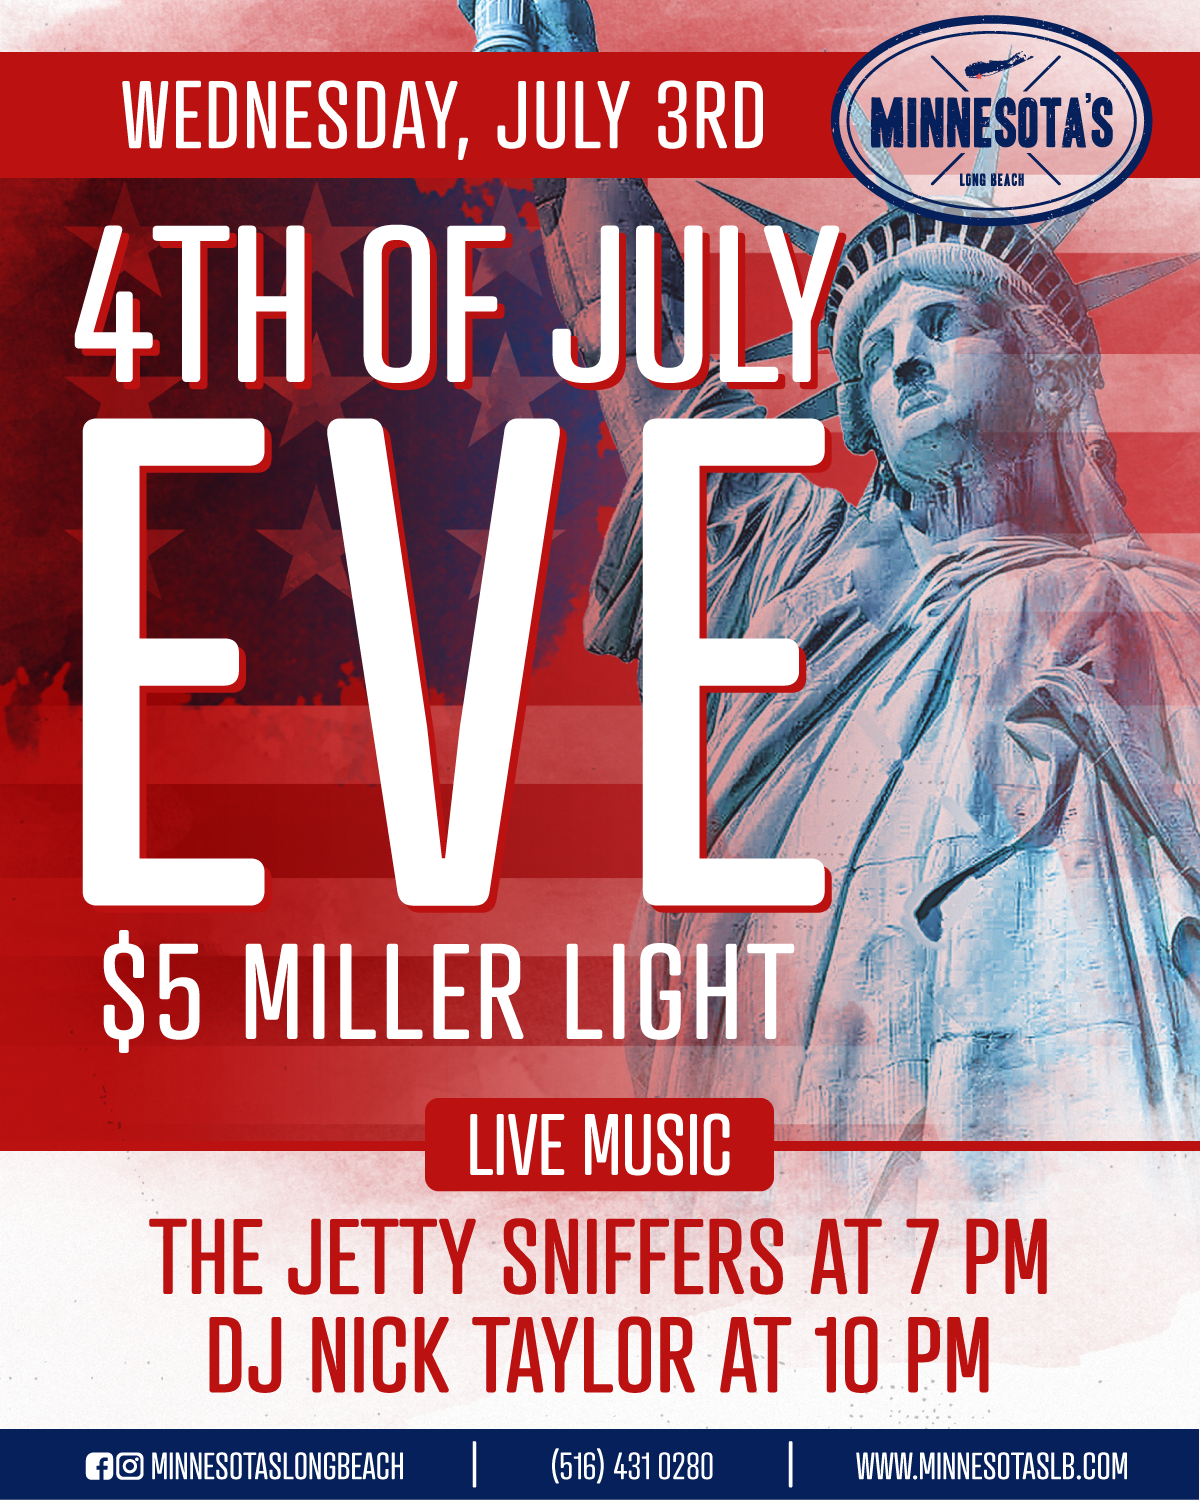 July 3rd: 4th of July Eve party and sip on $5 Miller Lights with live music from Jetty Sniffers and legendary tracks from DJ Nick Taylor.